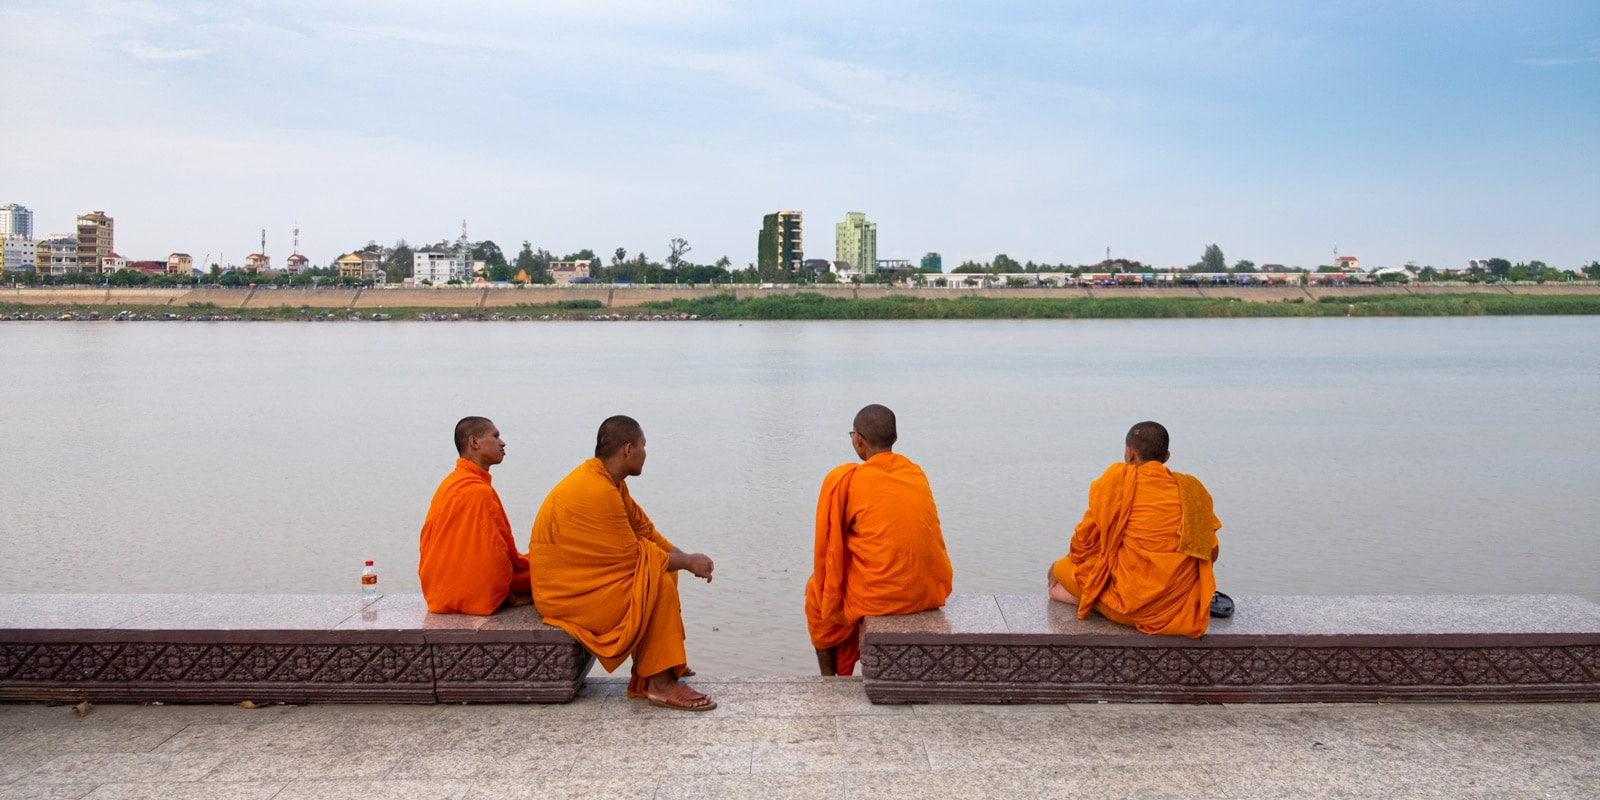 Four Buddhist monks by Phnom Penh riverside. Phnom Penh, Cambodia. Travel photos of Cambodia.